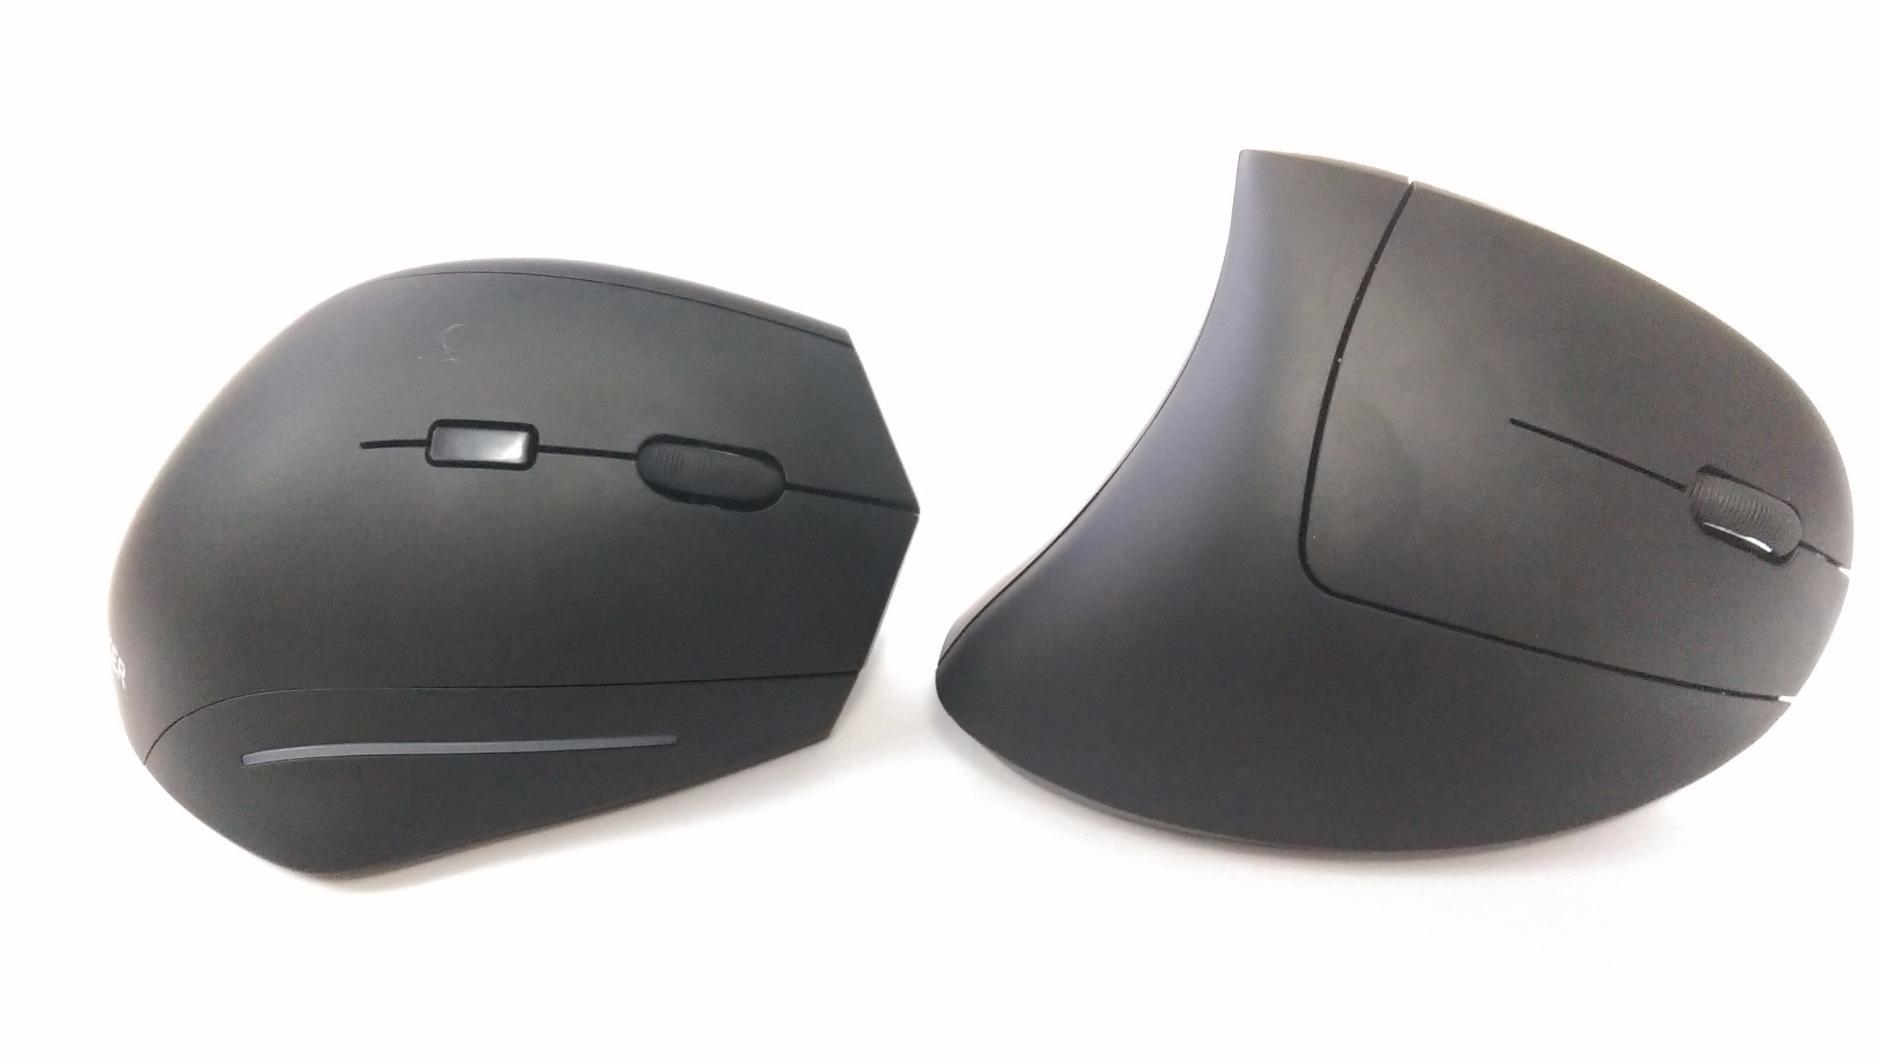 Ergonomic Optical Wireless Vertical Mouse – Solo Gizmo